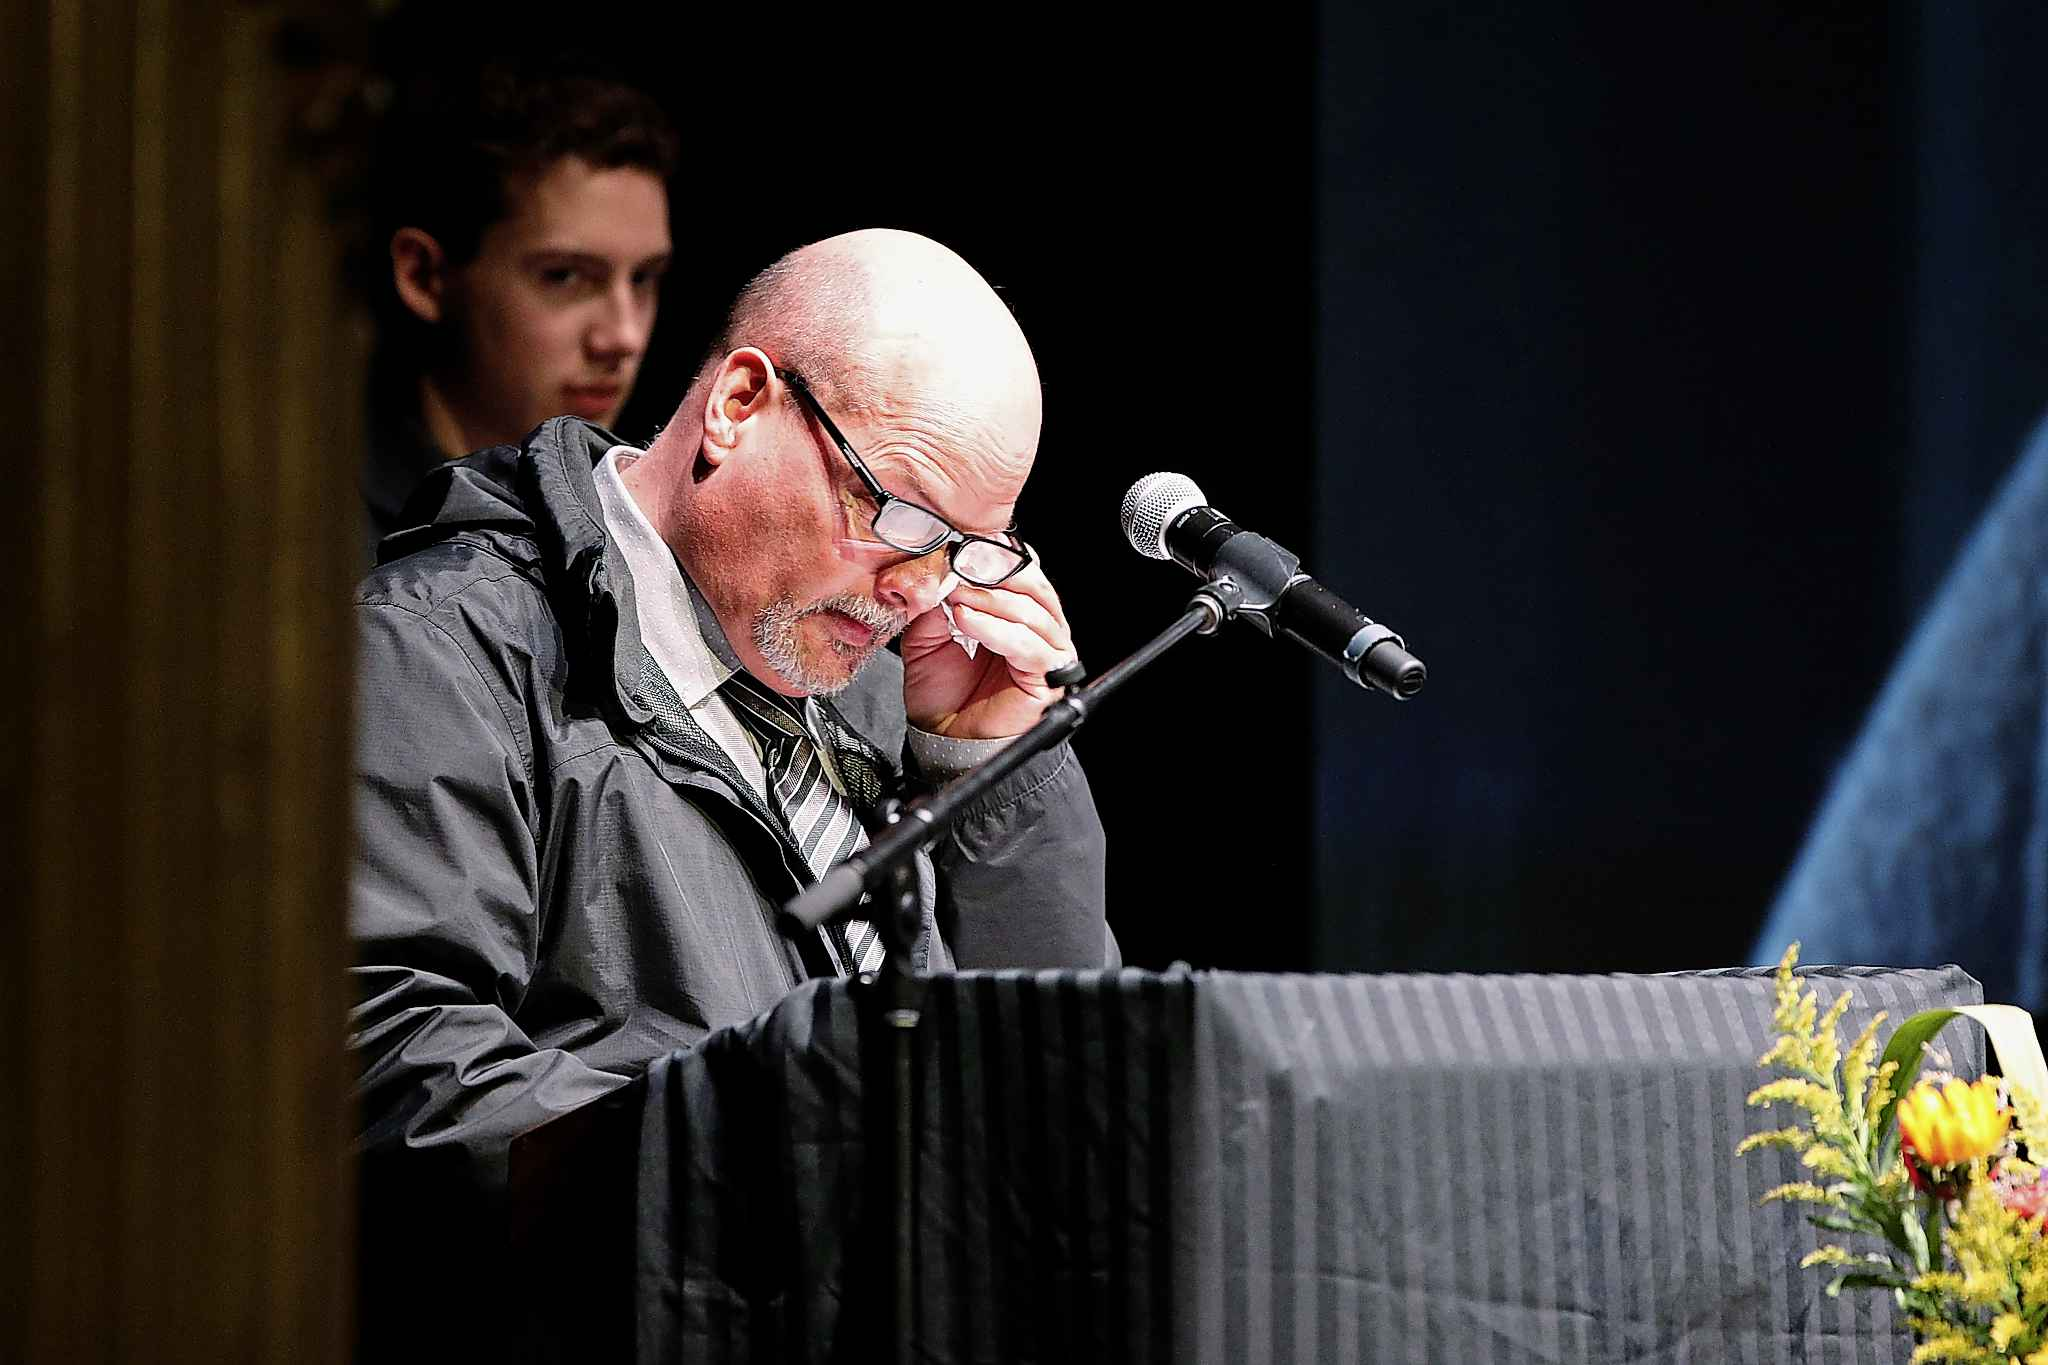 Kent Turner, brother of Randy Turner, wipes away a tear as he speaks. (JOHN WOODS / WINNIPEG FREE PRESS)